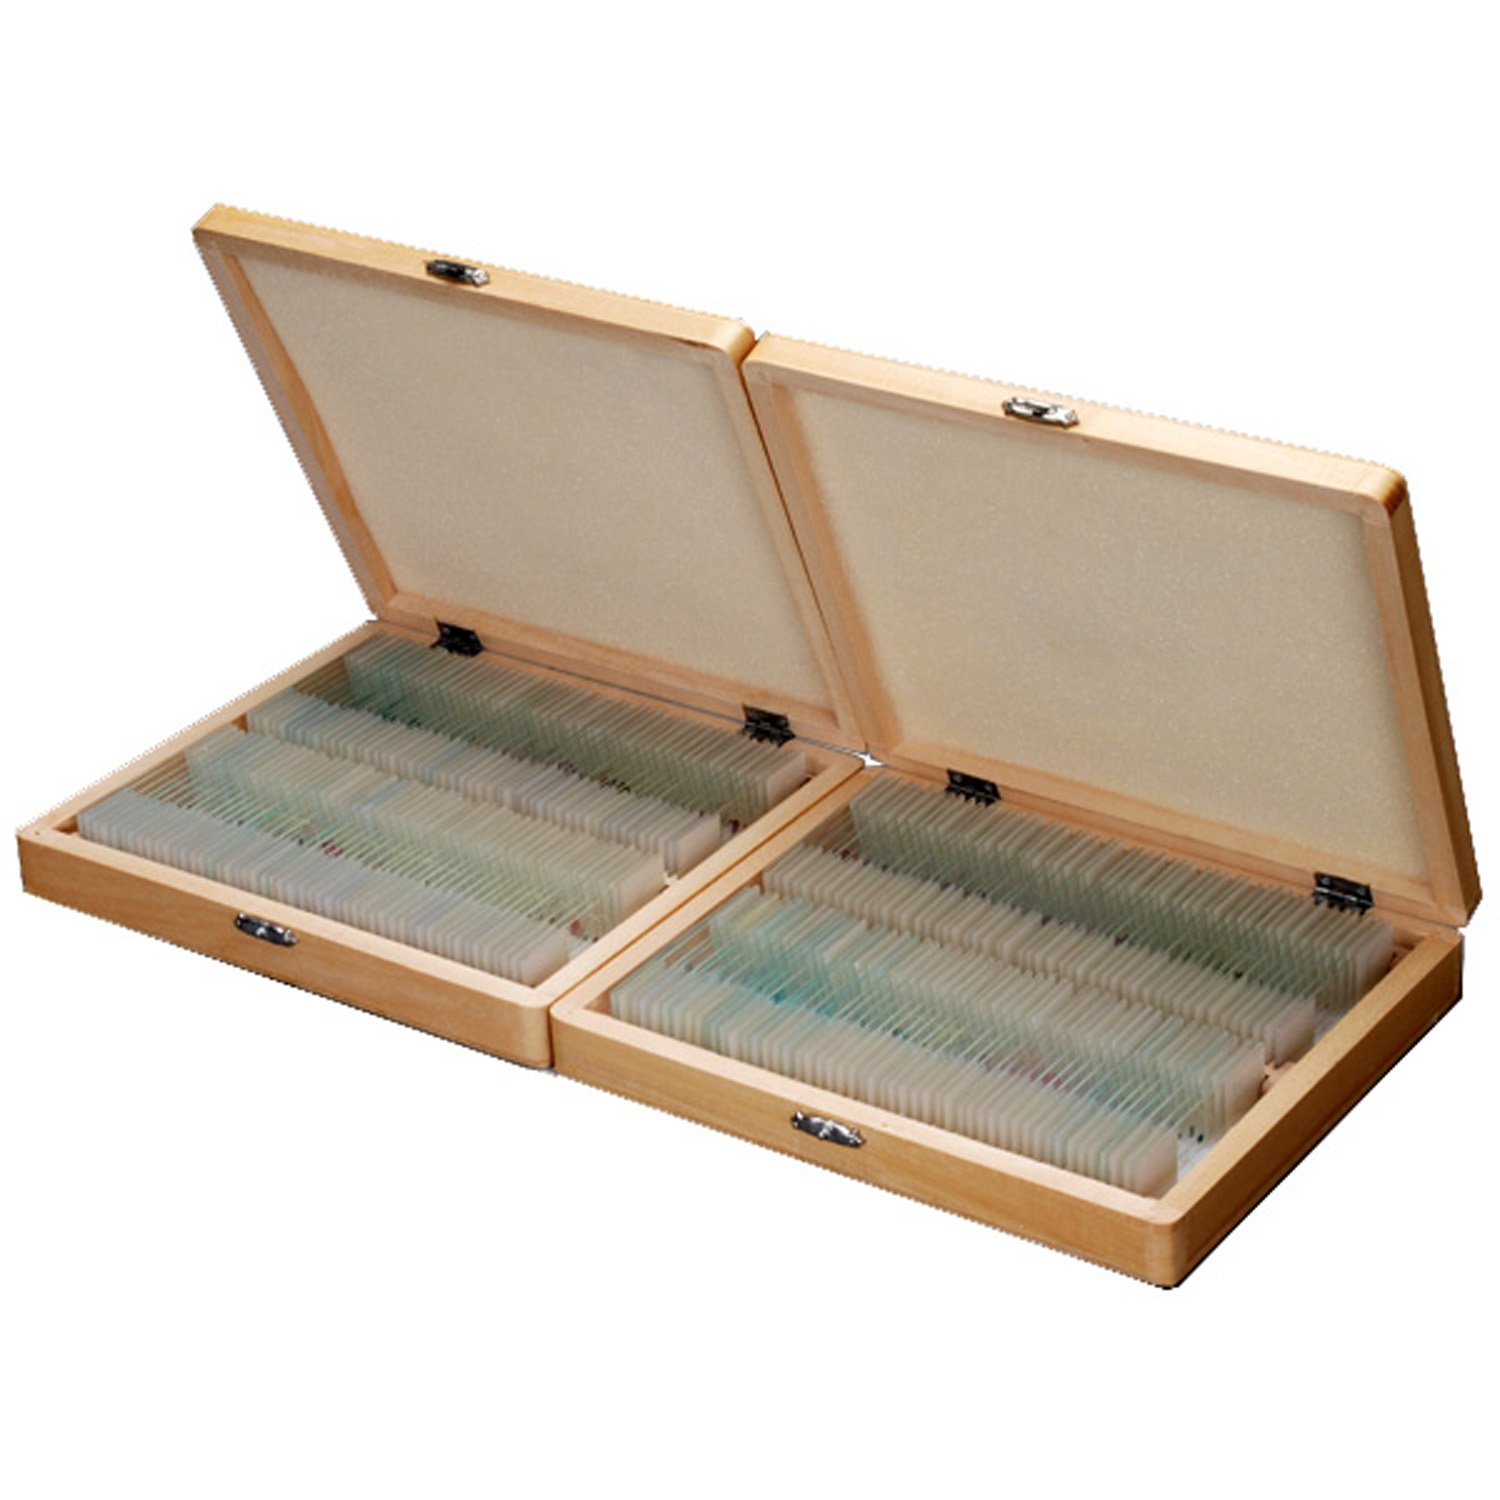 AmScope 200pc Home School Student Basic Biology Science Prepared Slides Microscope Slides with Wooden Box Cases